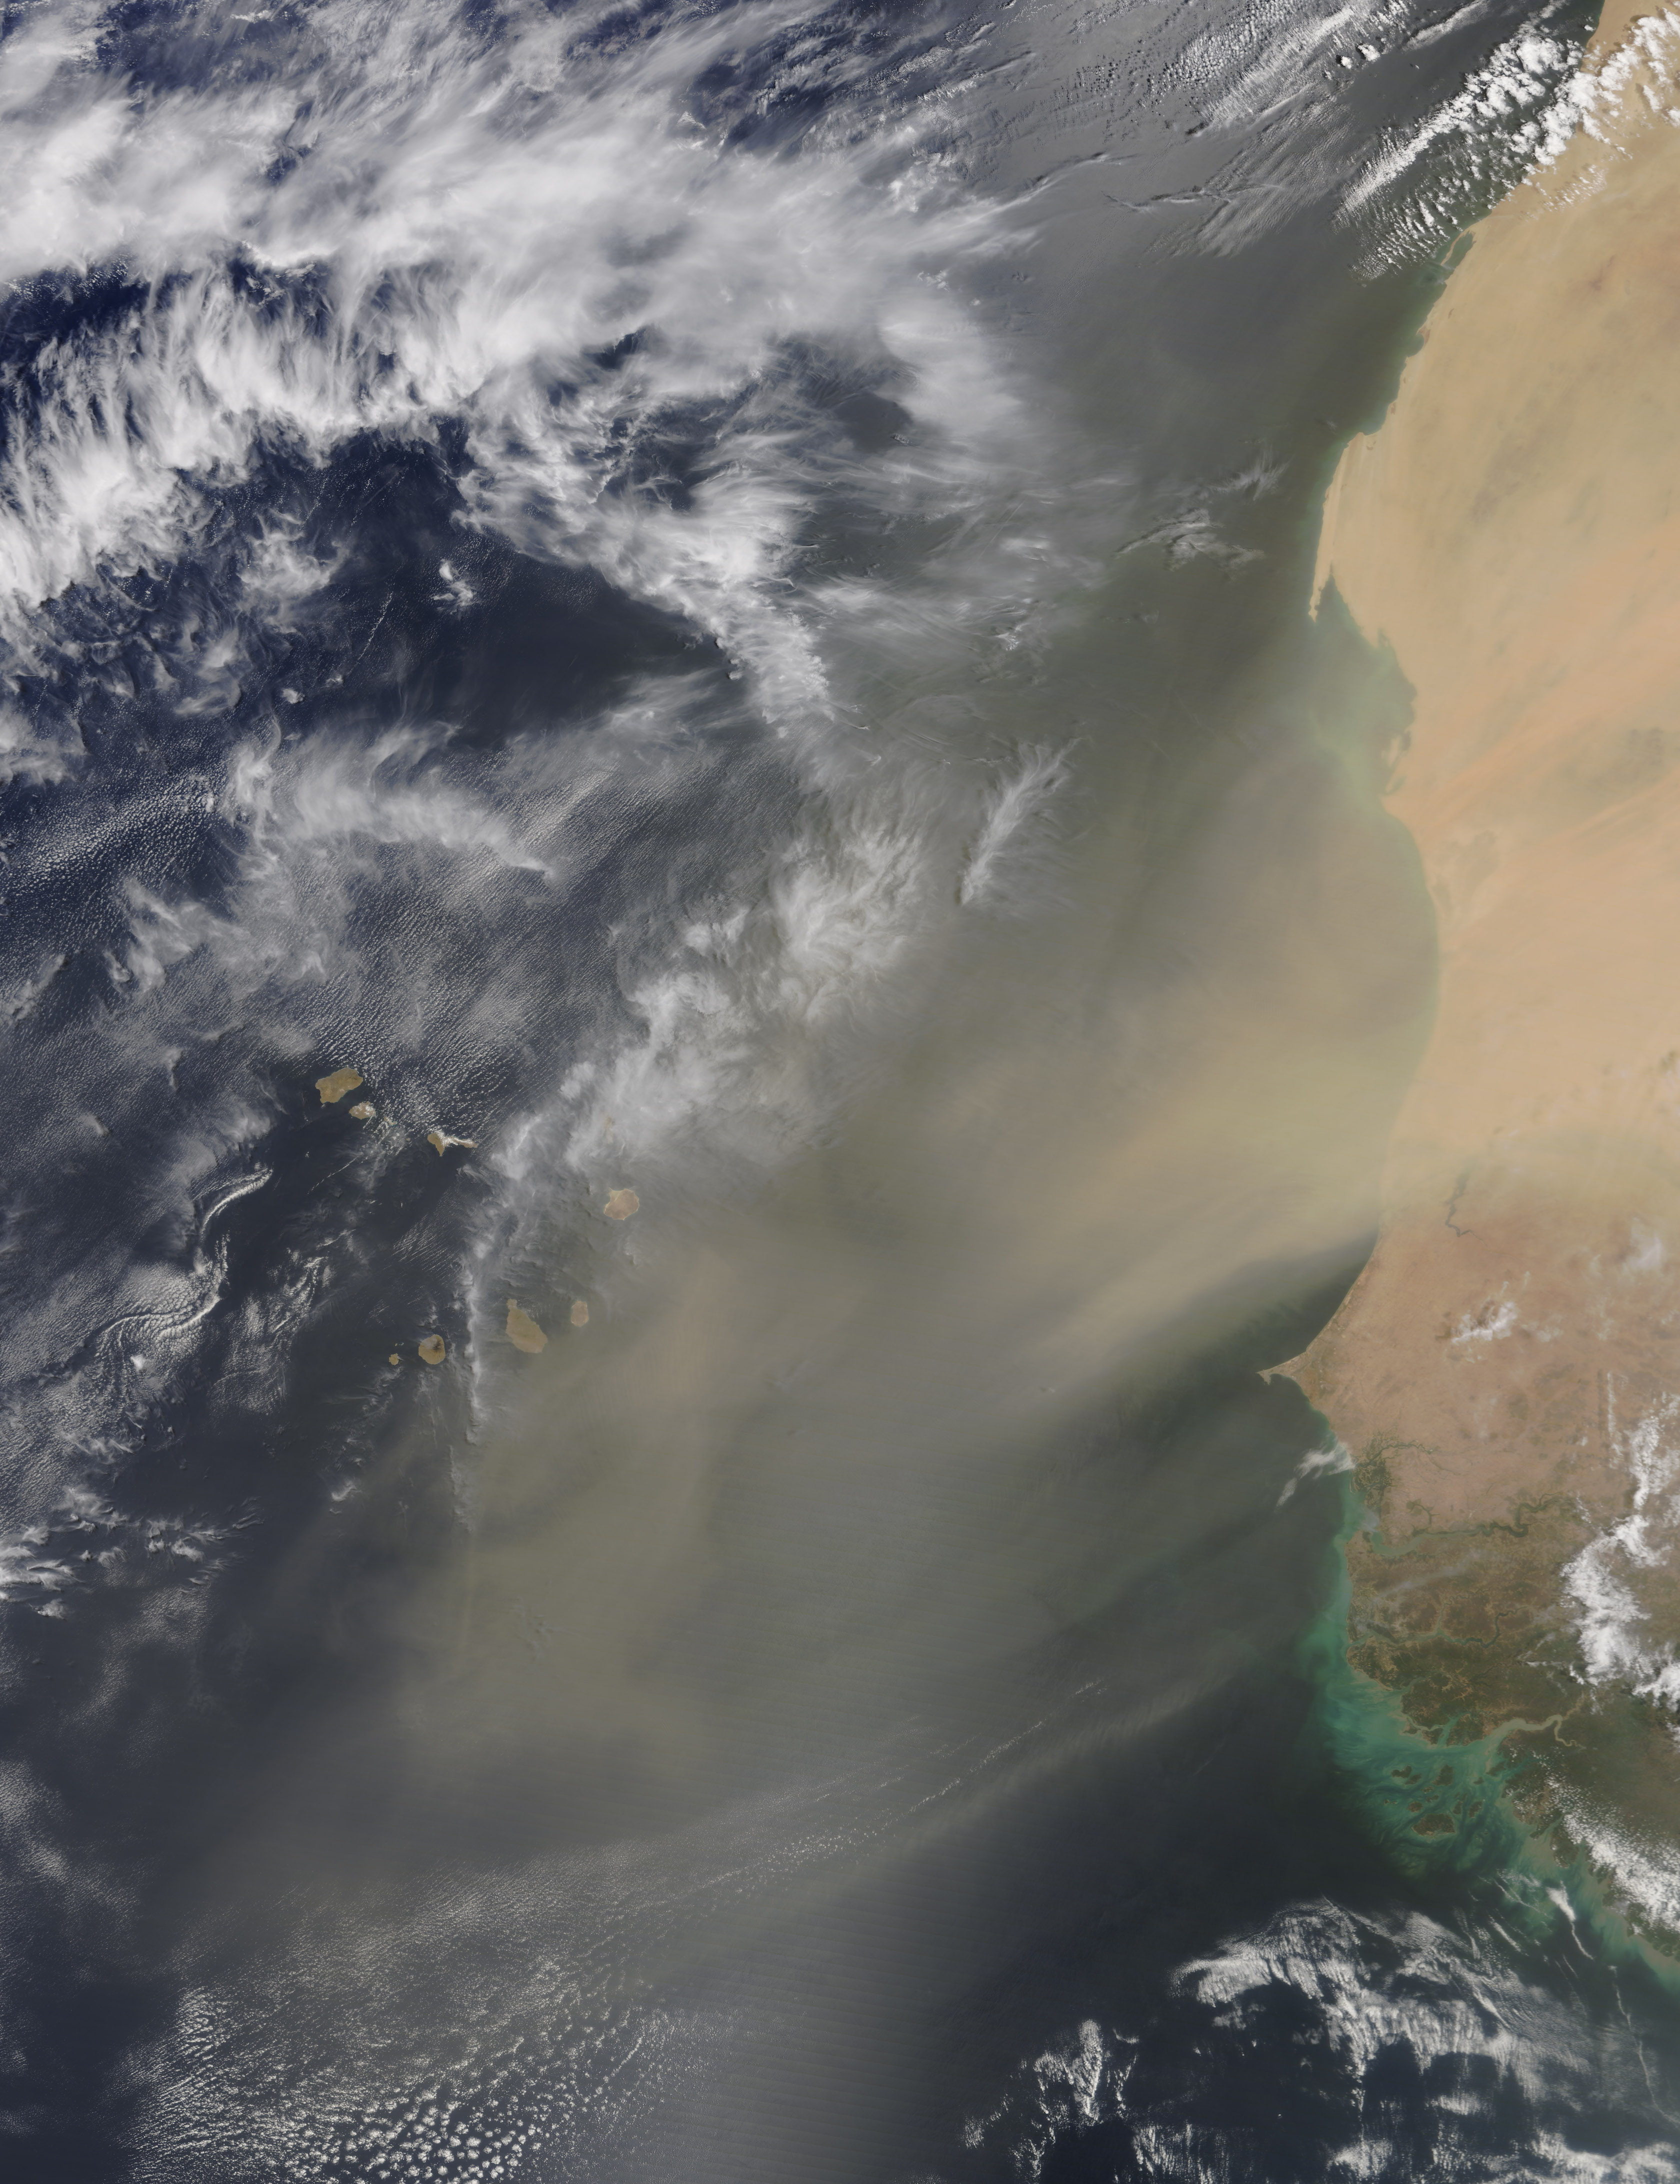 Today's Image of the Day comes thanks to the NASA Earth Observatory and features a look at dusty winds over the coast of western Africa.